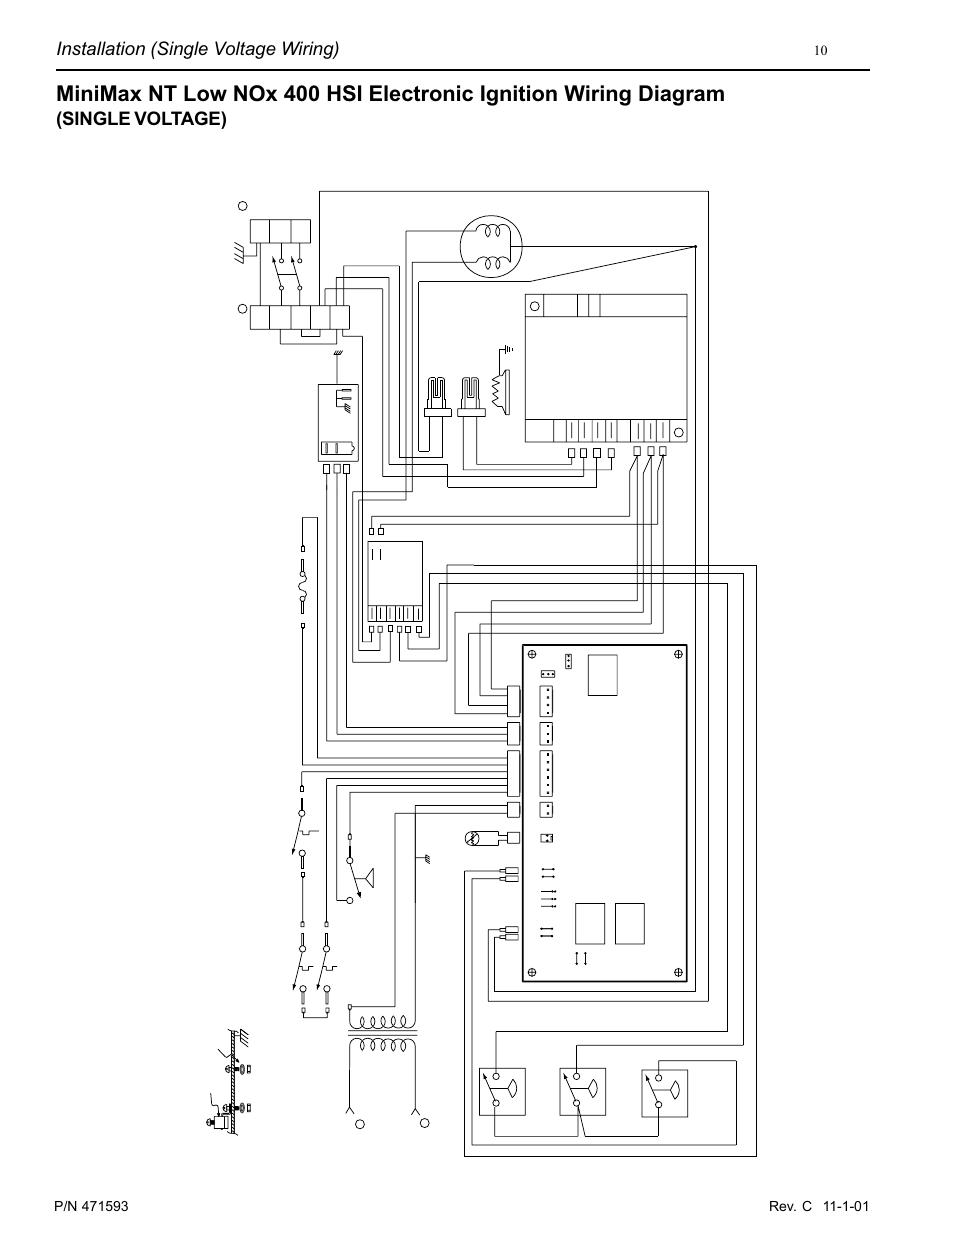 Wiring Diagram Pentair | New Wiring Resources 2019 on pentair superflo wiring diagram, hayward super ii wiring diagram, flow switch wiring diagram, pentair challenger pump wiring diagram,